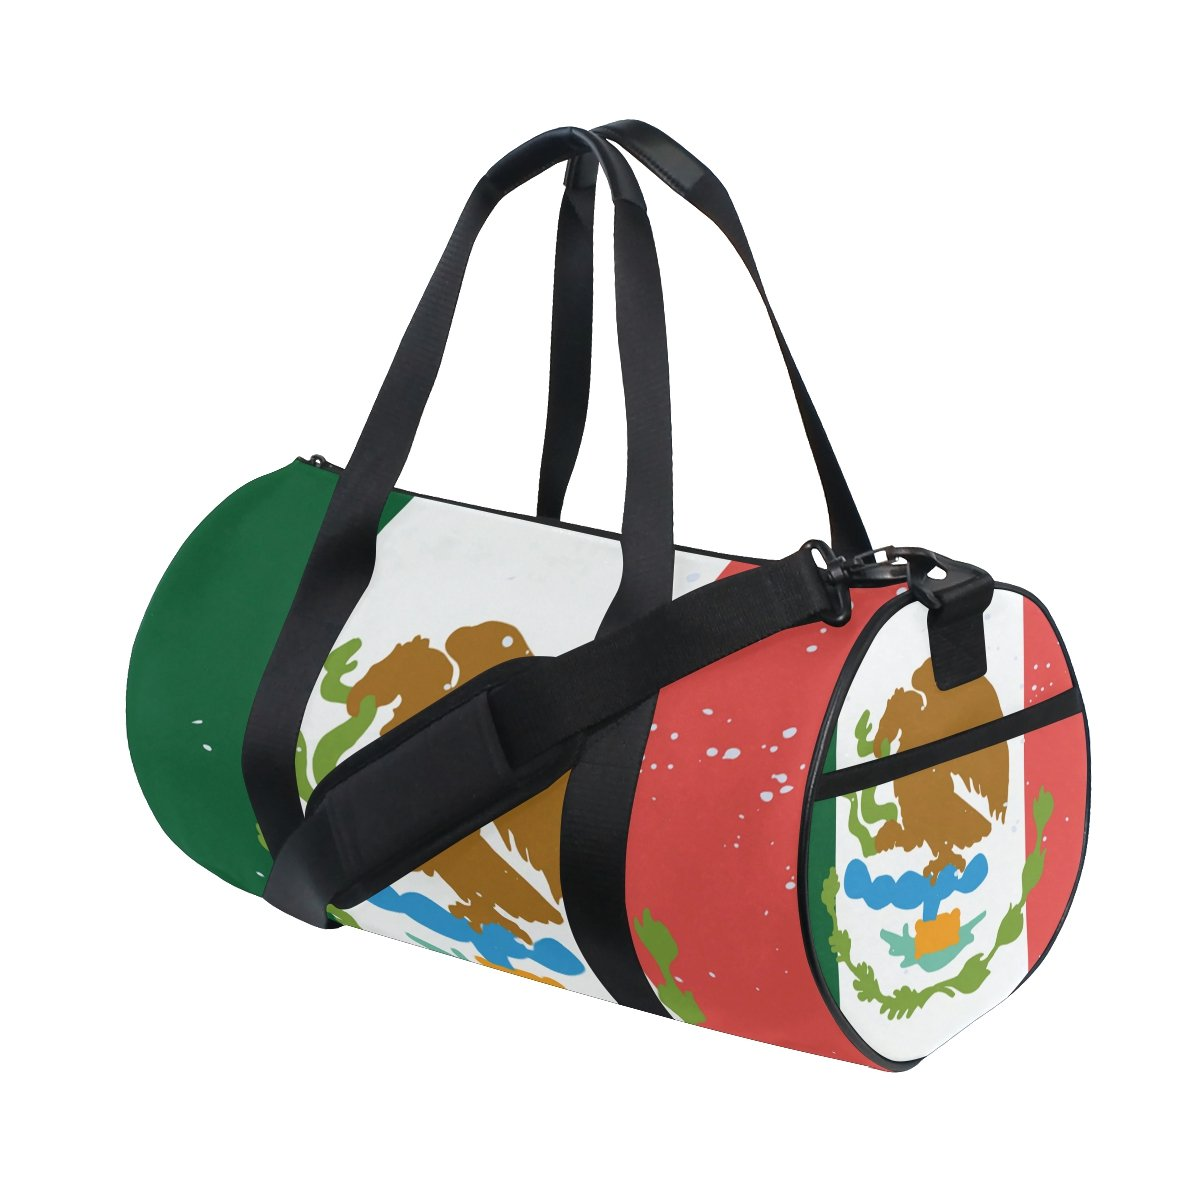 Distressed Mexico Flag Travel Duffel Shoulder Bag ,Sports Gym Fitness Bags by super3Dprinted